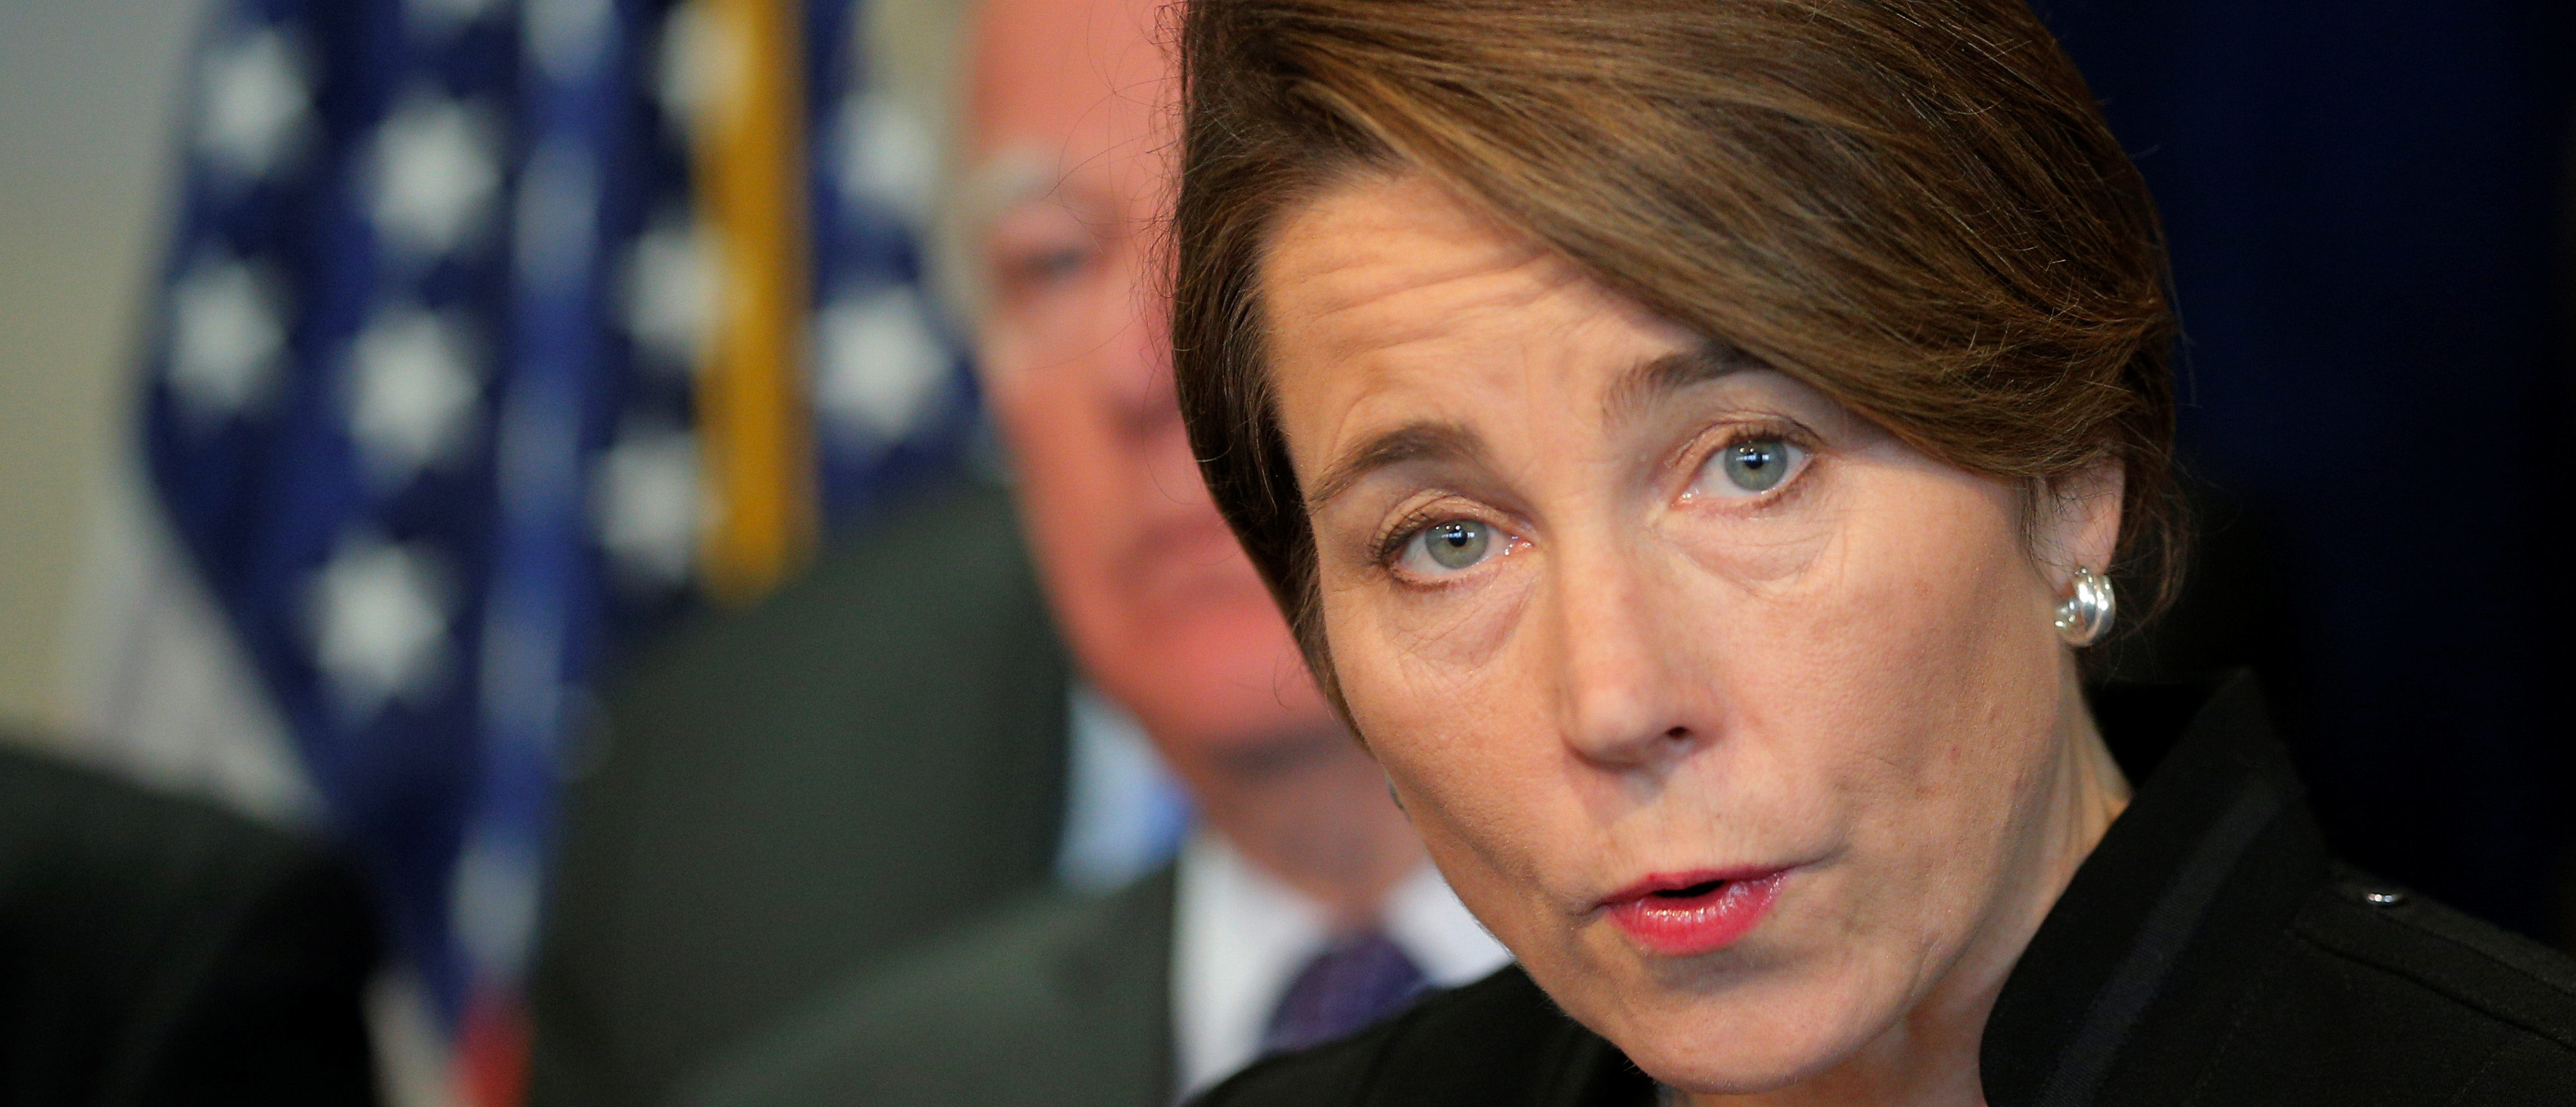 Massachusetts Attorney General Maura Healey announces the state will join a lawsuit challenging U.S. President Donald Trump's executive order travel ban in Boston, Massachusetts, U.S., January 31, 2017.   REUTERS/Brian Snyder - RC128E94EBA0